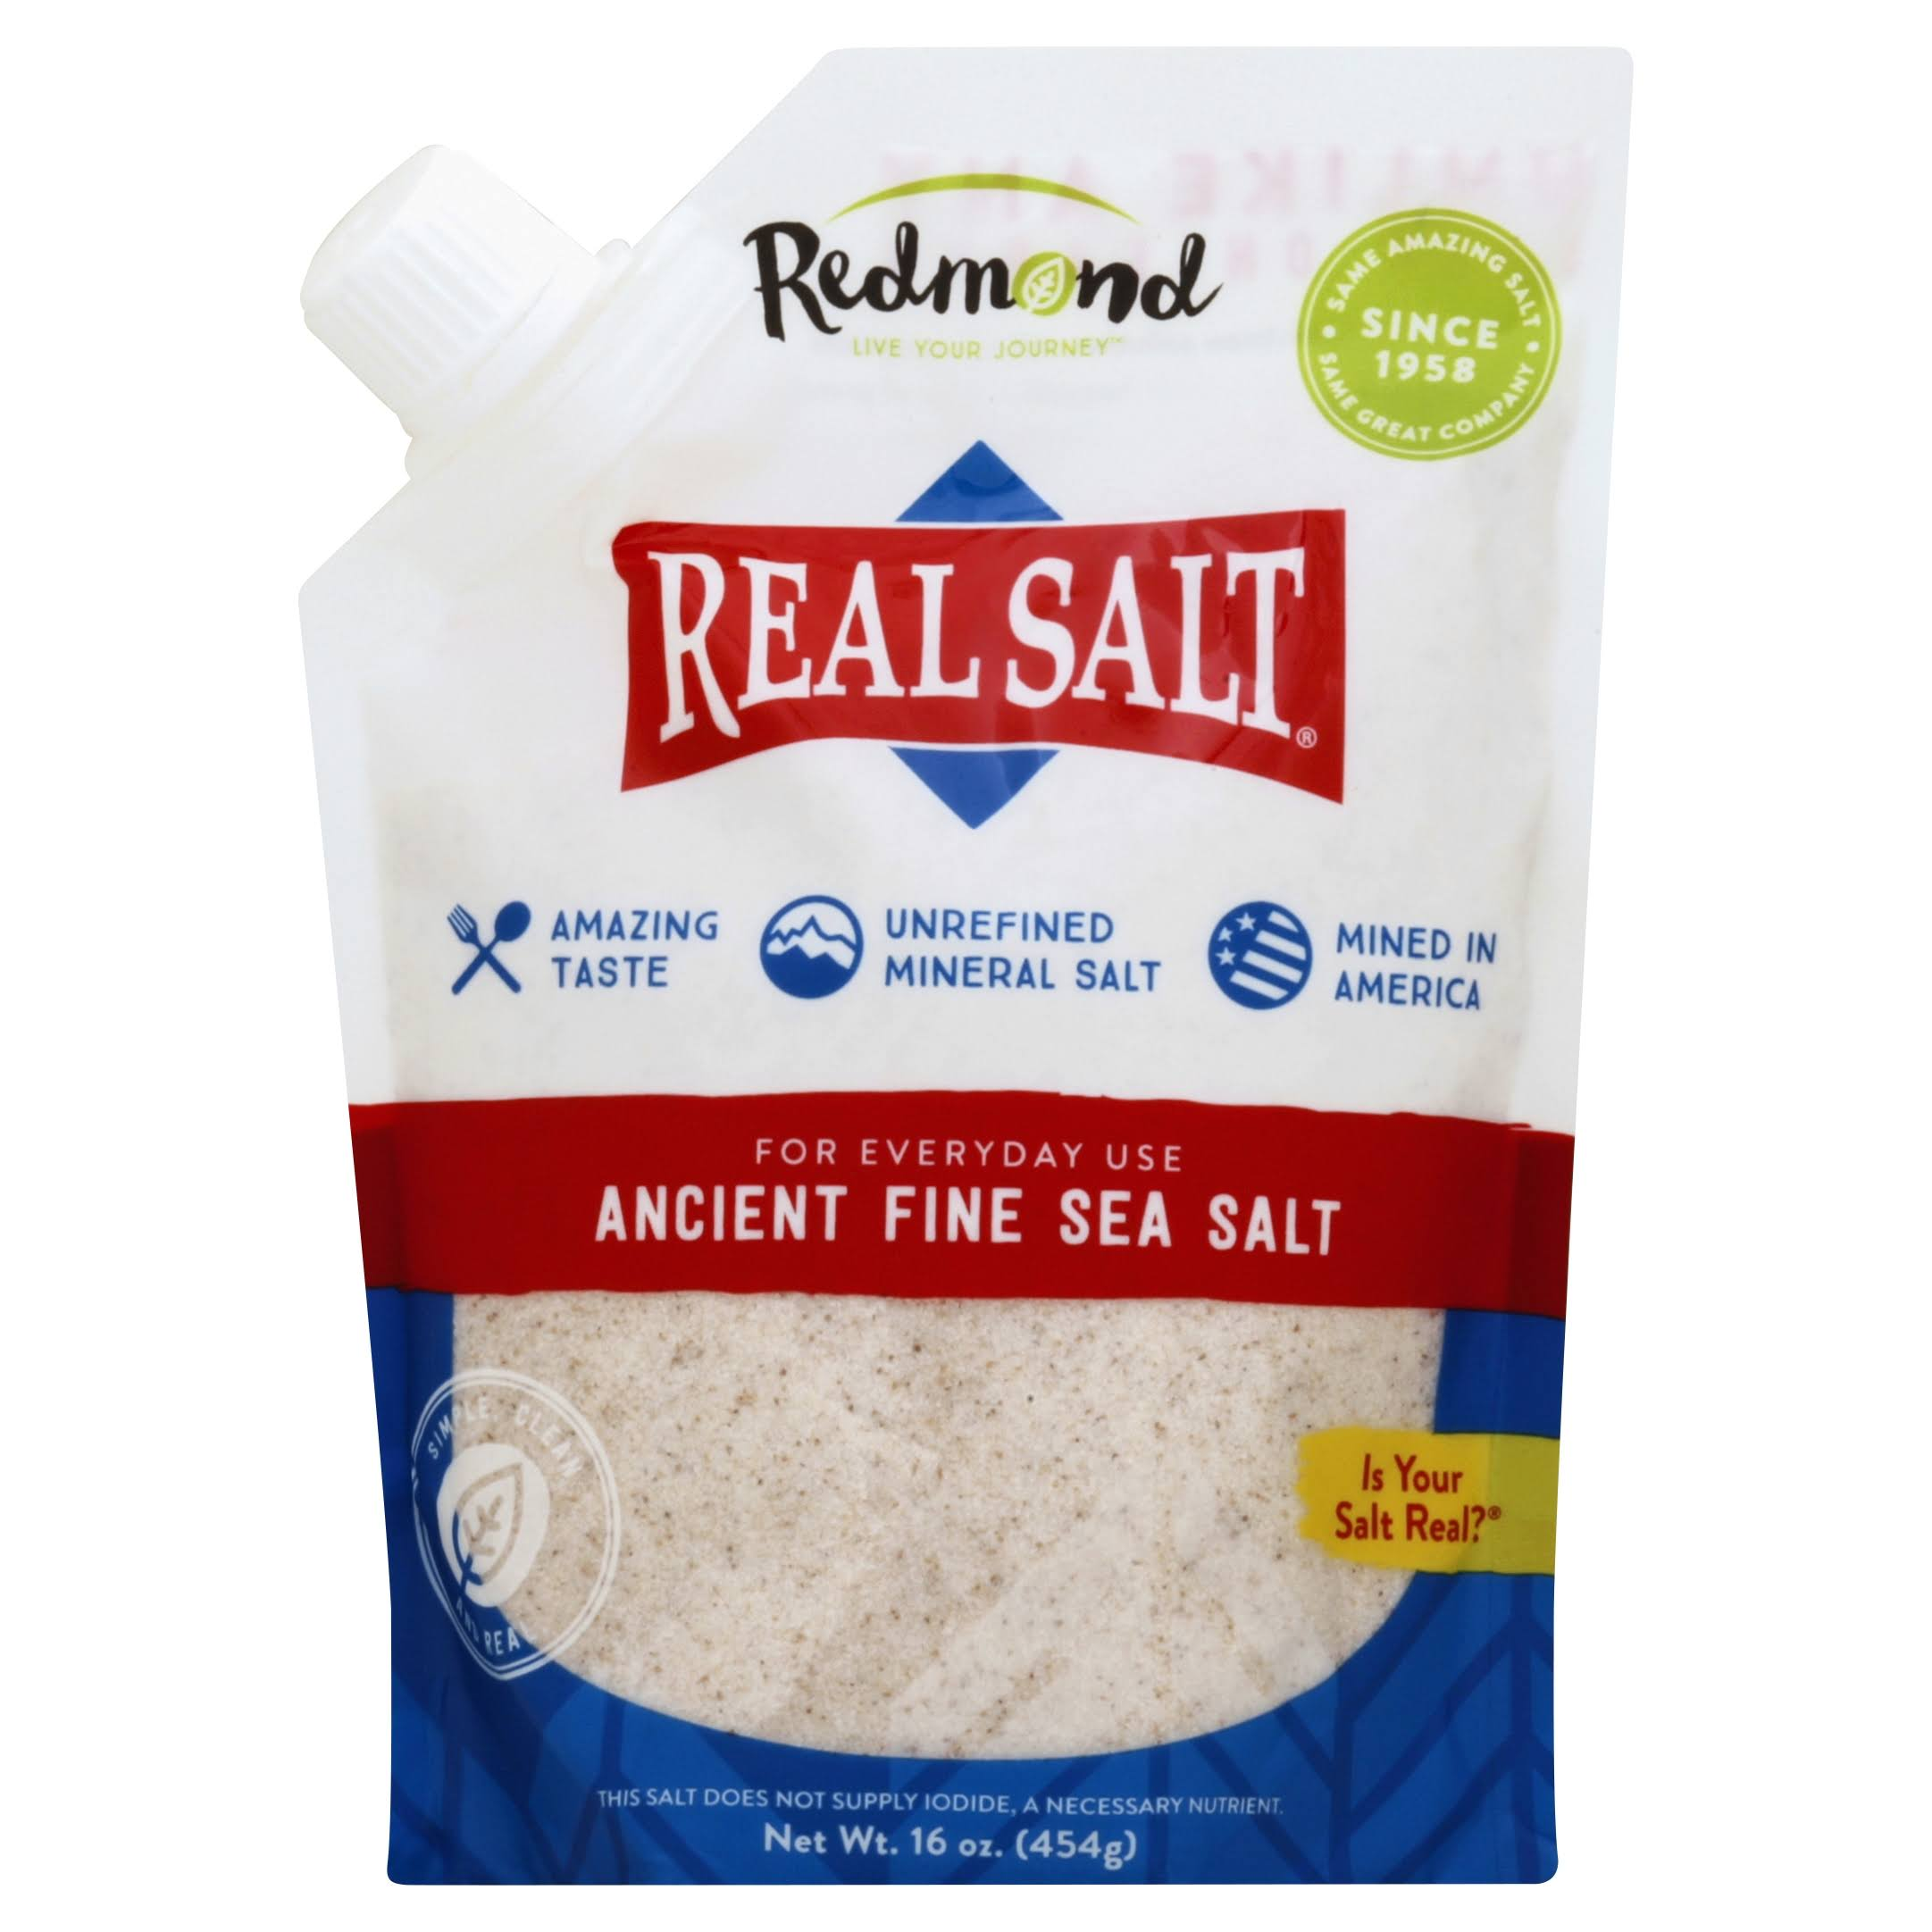 Real Salt Sea Salt, Ancient, Fine - 16 oz